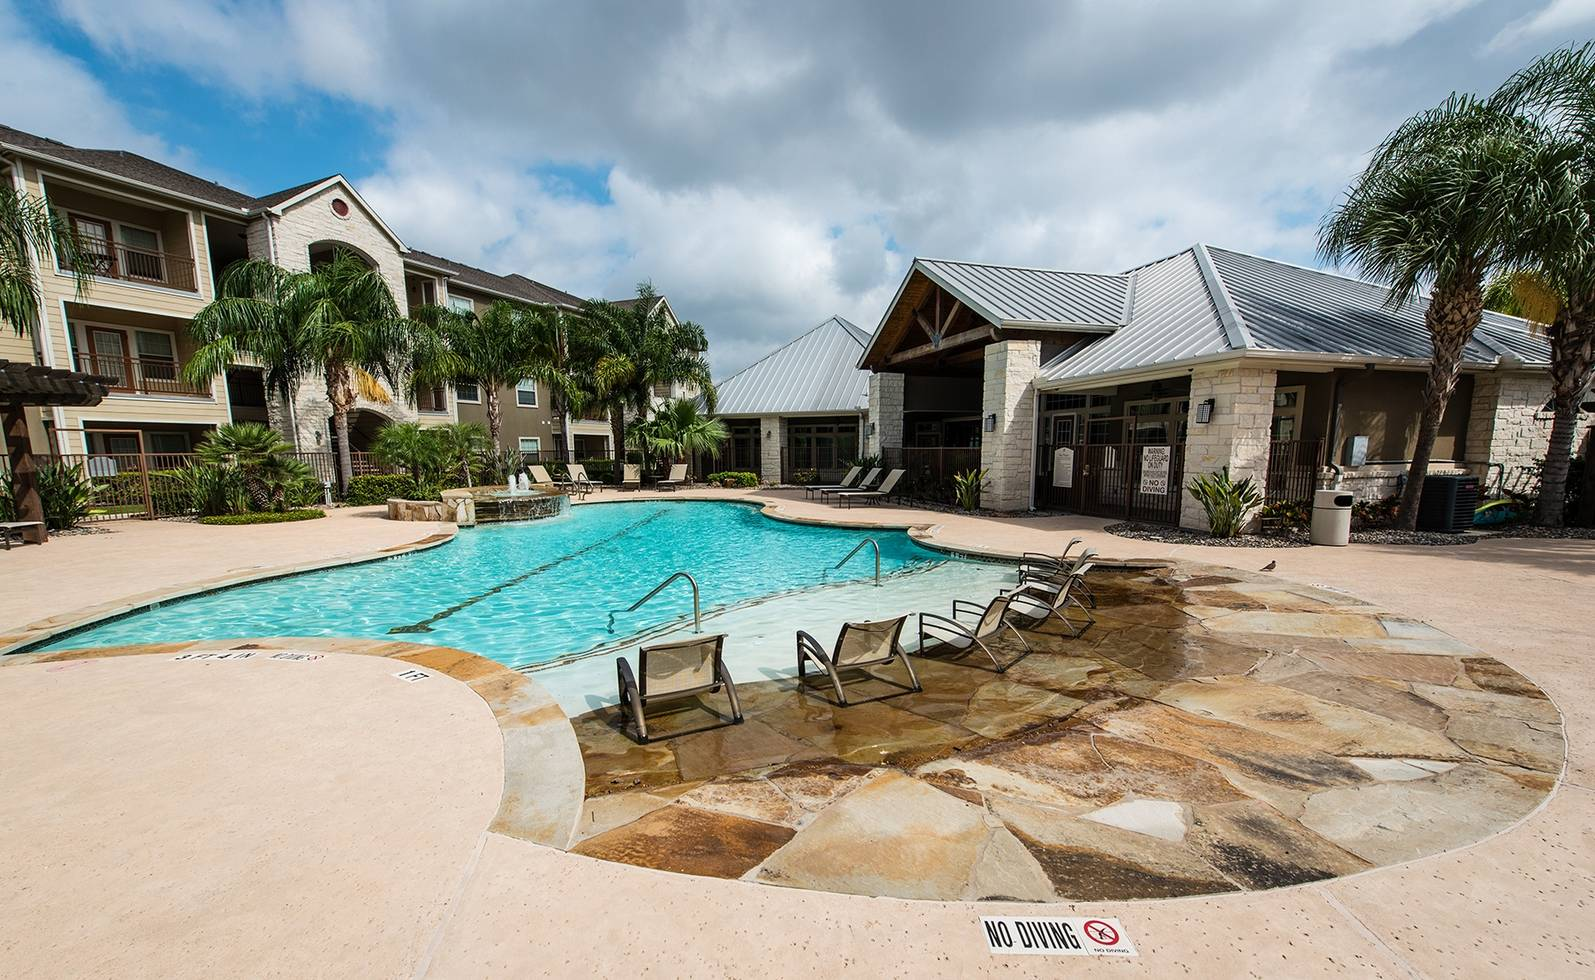 Resort-style pool on property